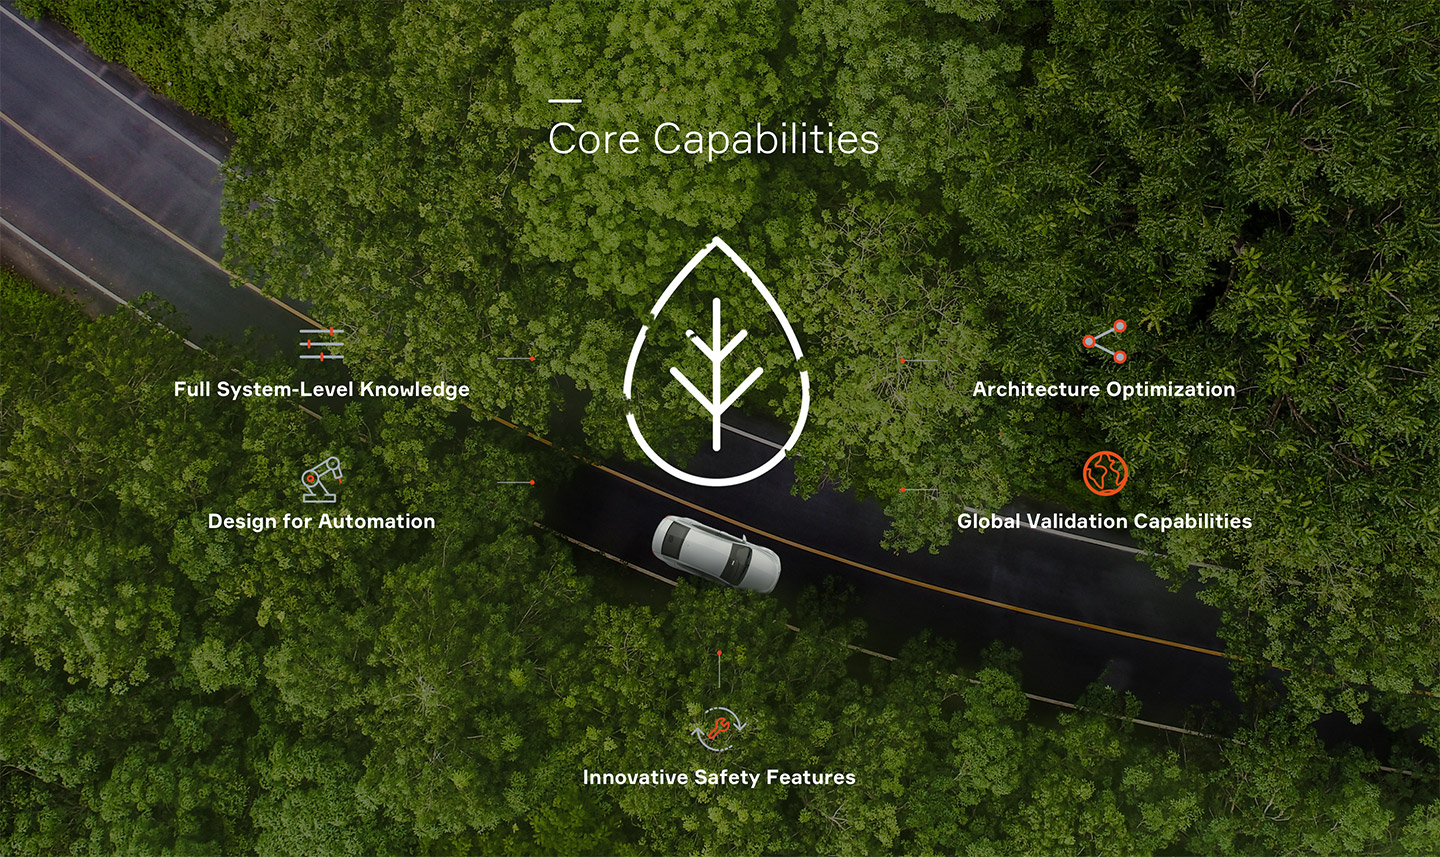 Aptiv Core Capabilities